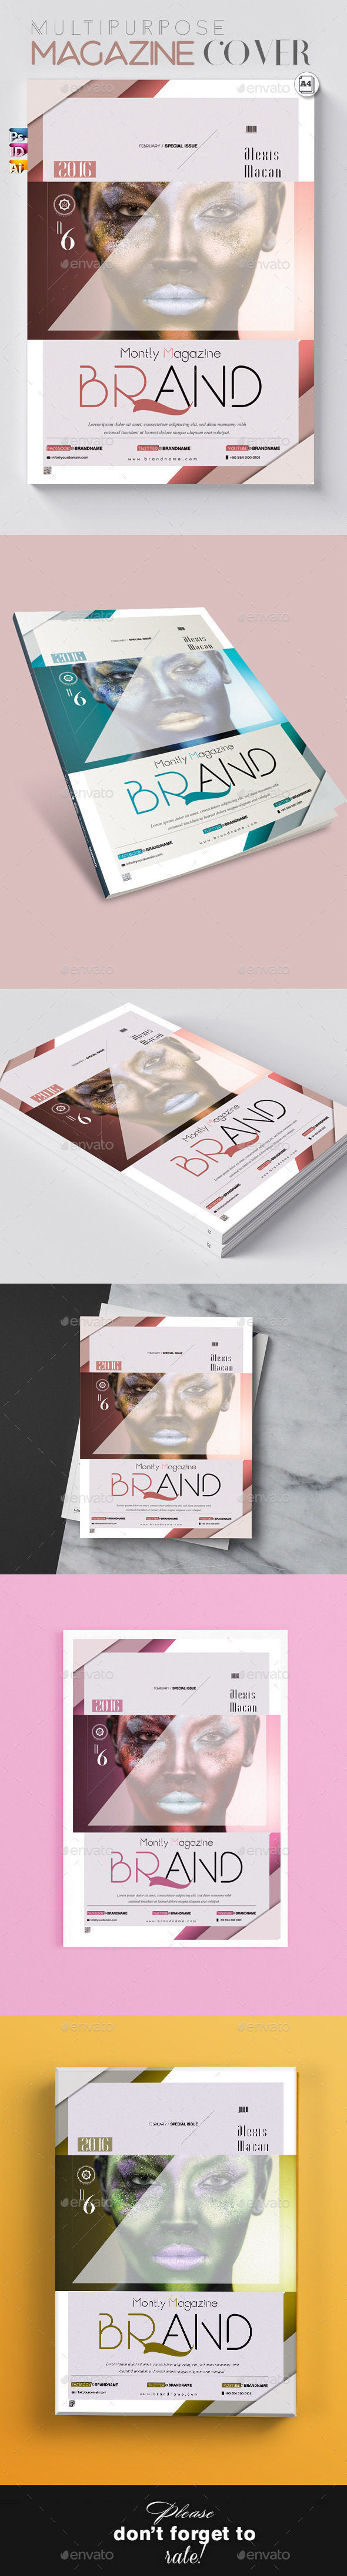 Multipurpose Magazine Cover with All Formats - Magazines Print Templates